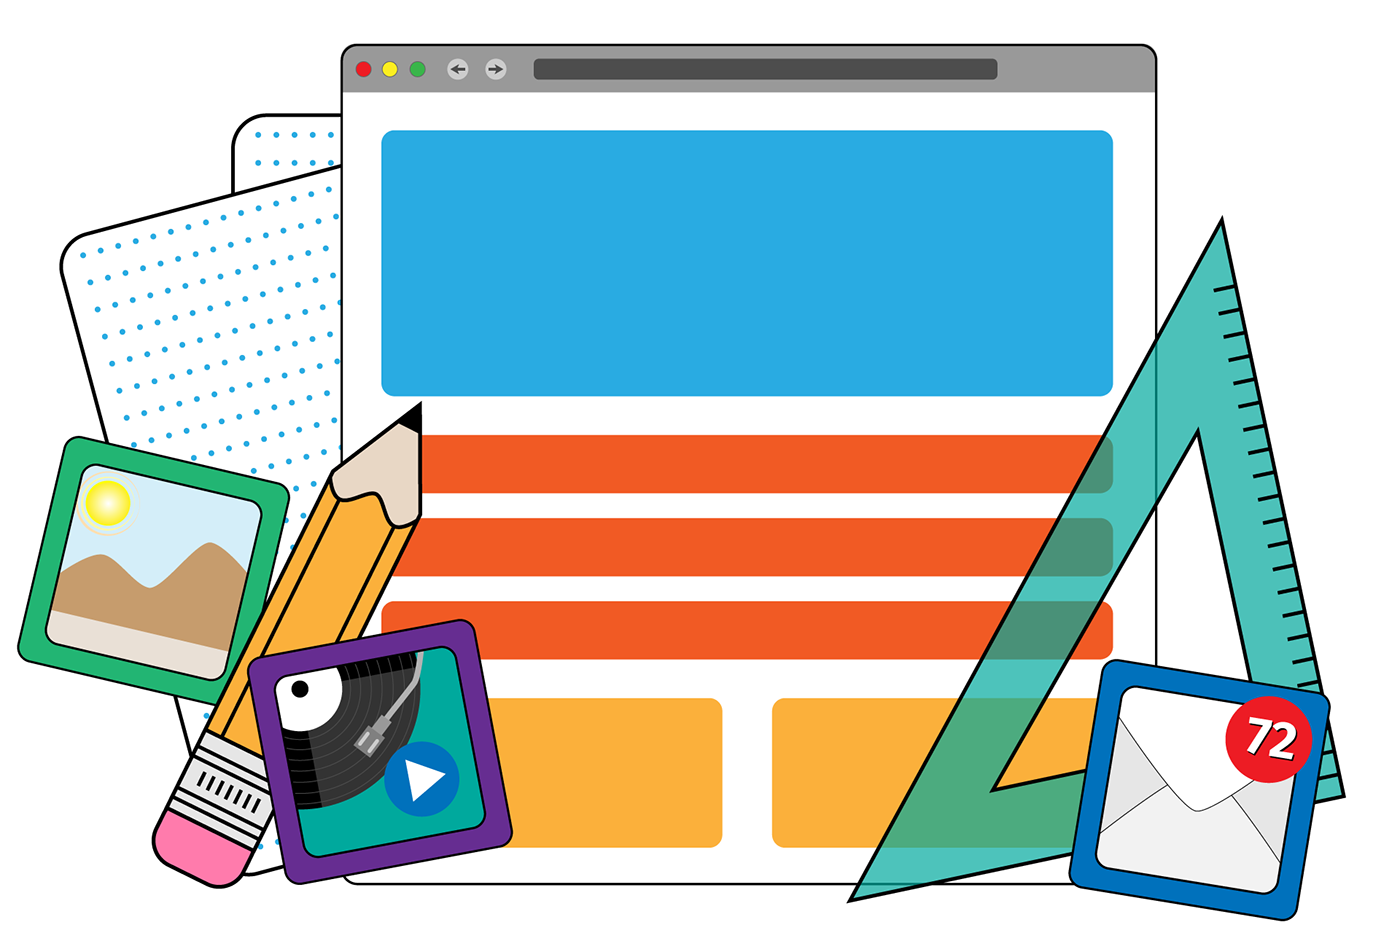 Dot grid sketch paper behind stylized browser window with isometric triangle, pencil, and app icons